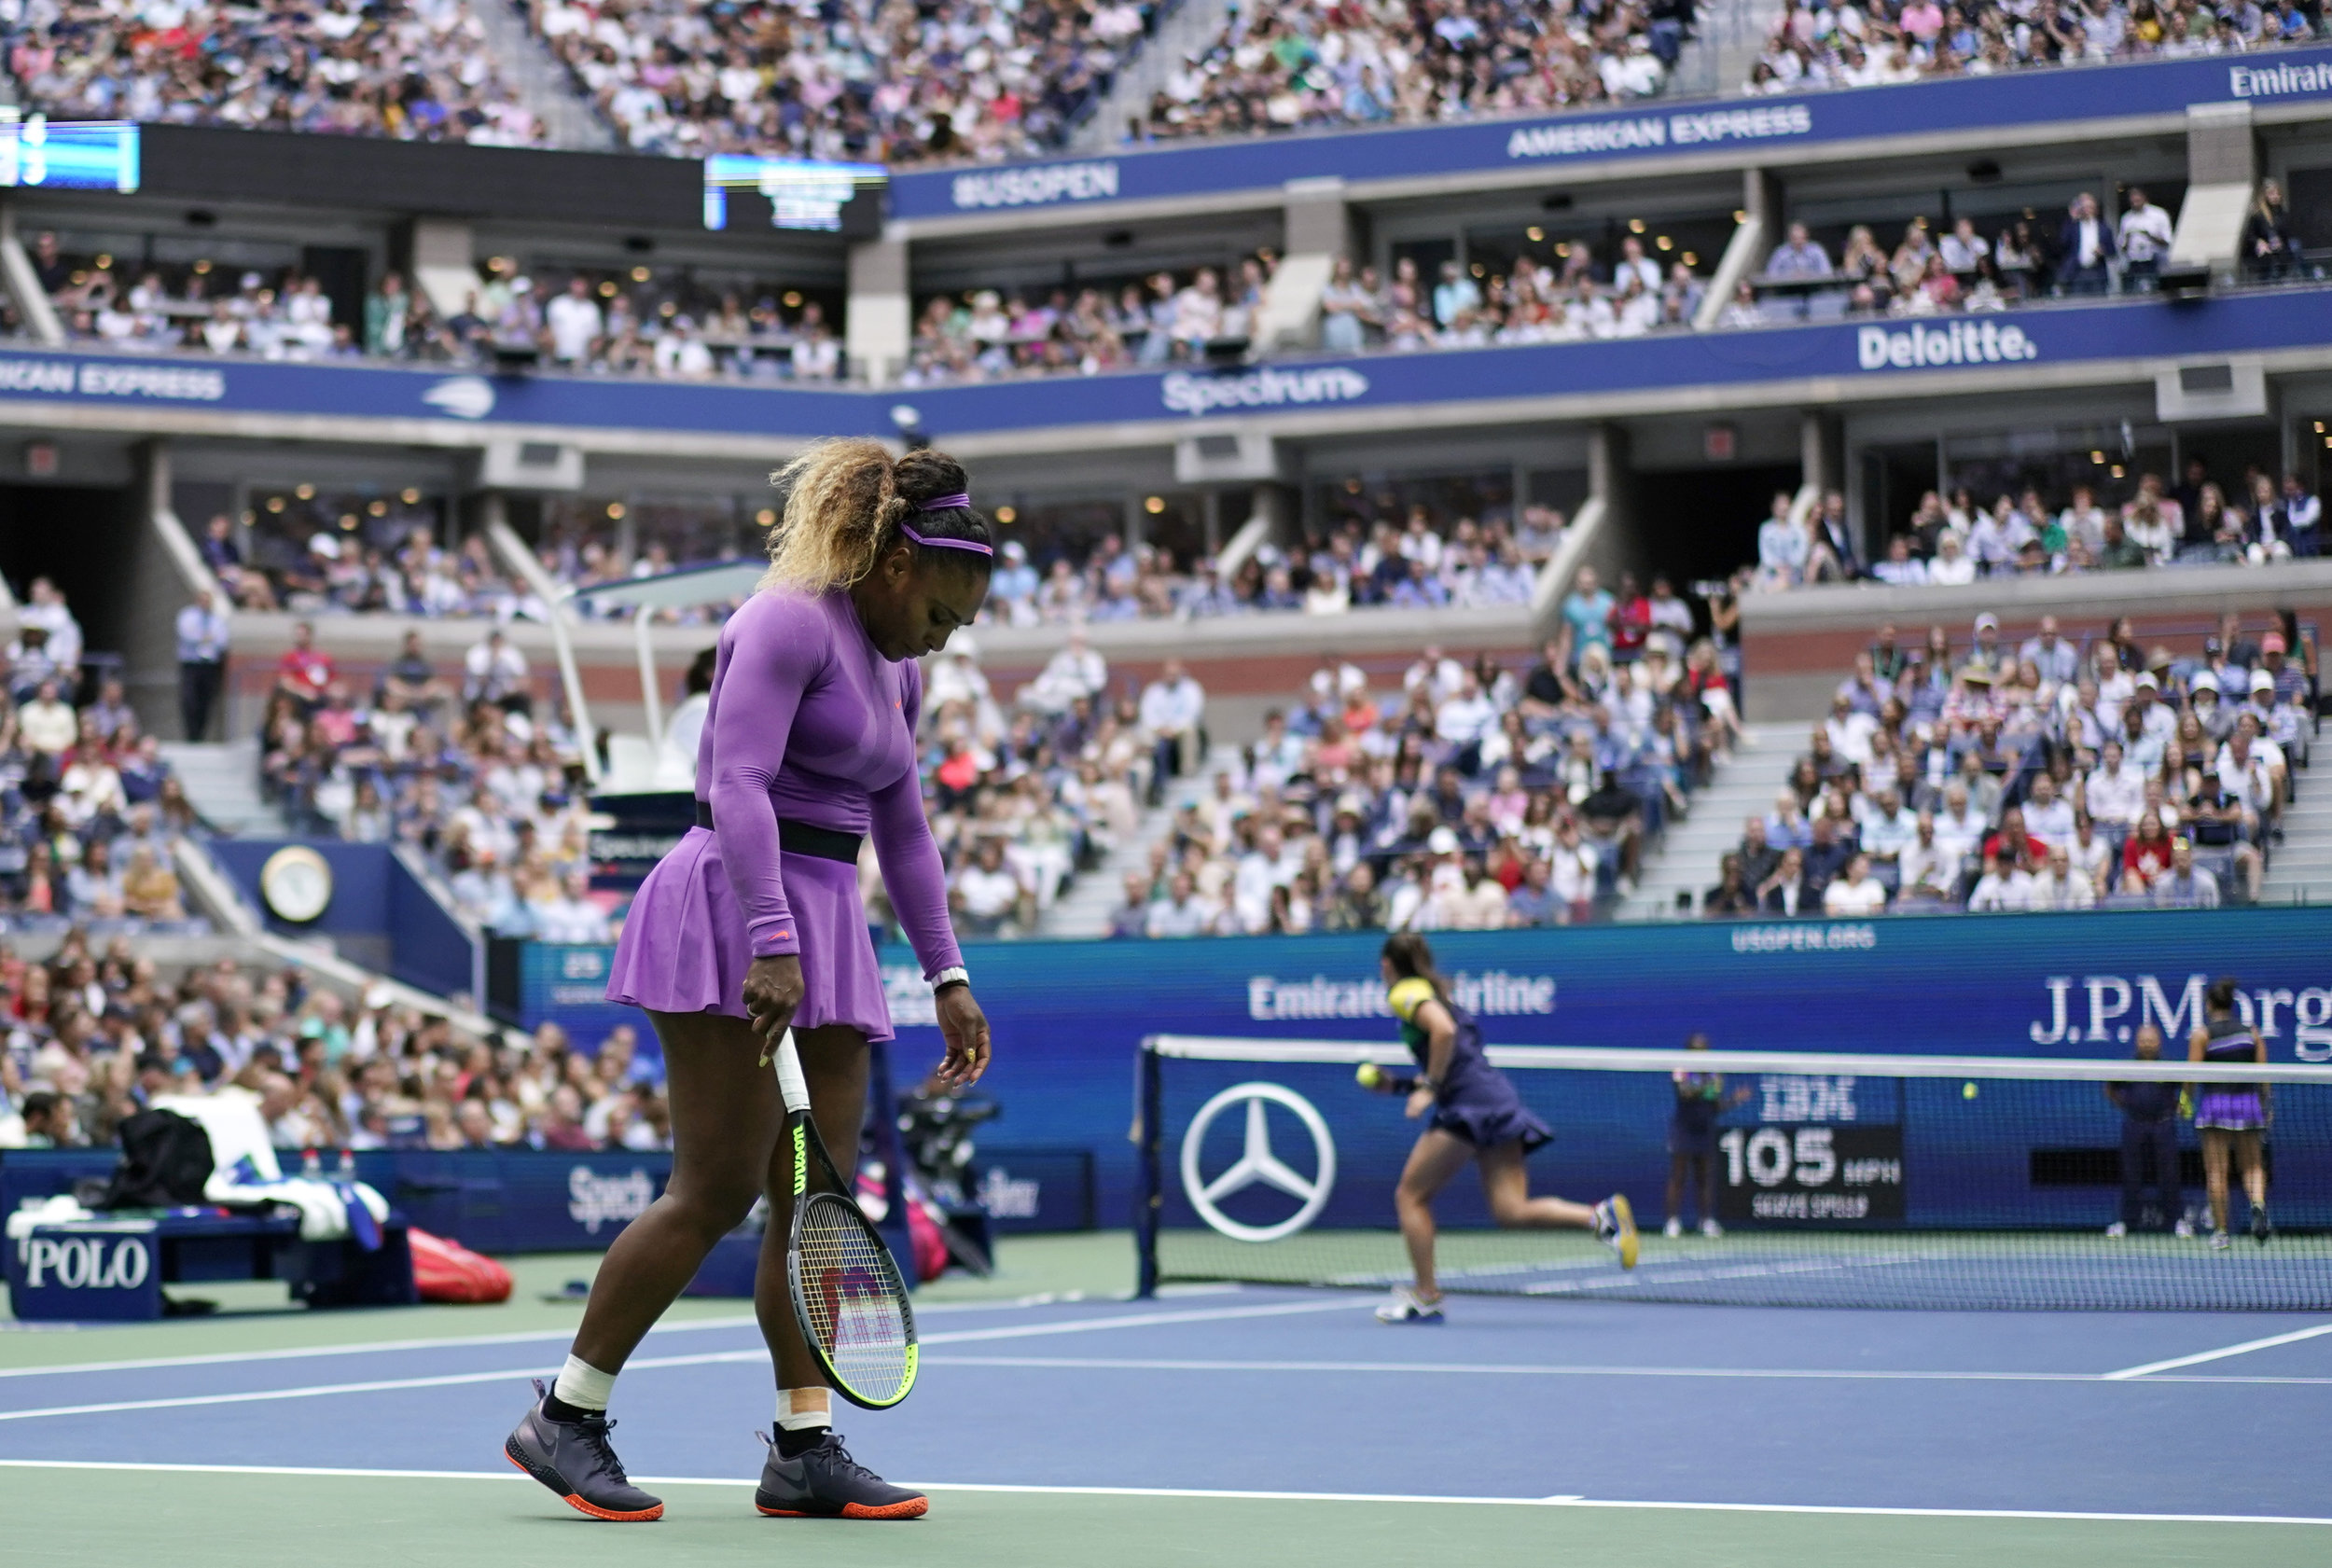 Williams has struggled to capture that coveted 24th Grand Slam title over the past couple years, reaching the finals but never making the final push to victory.  Photo by The Associated Press.